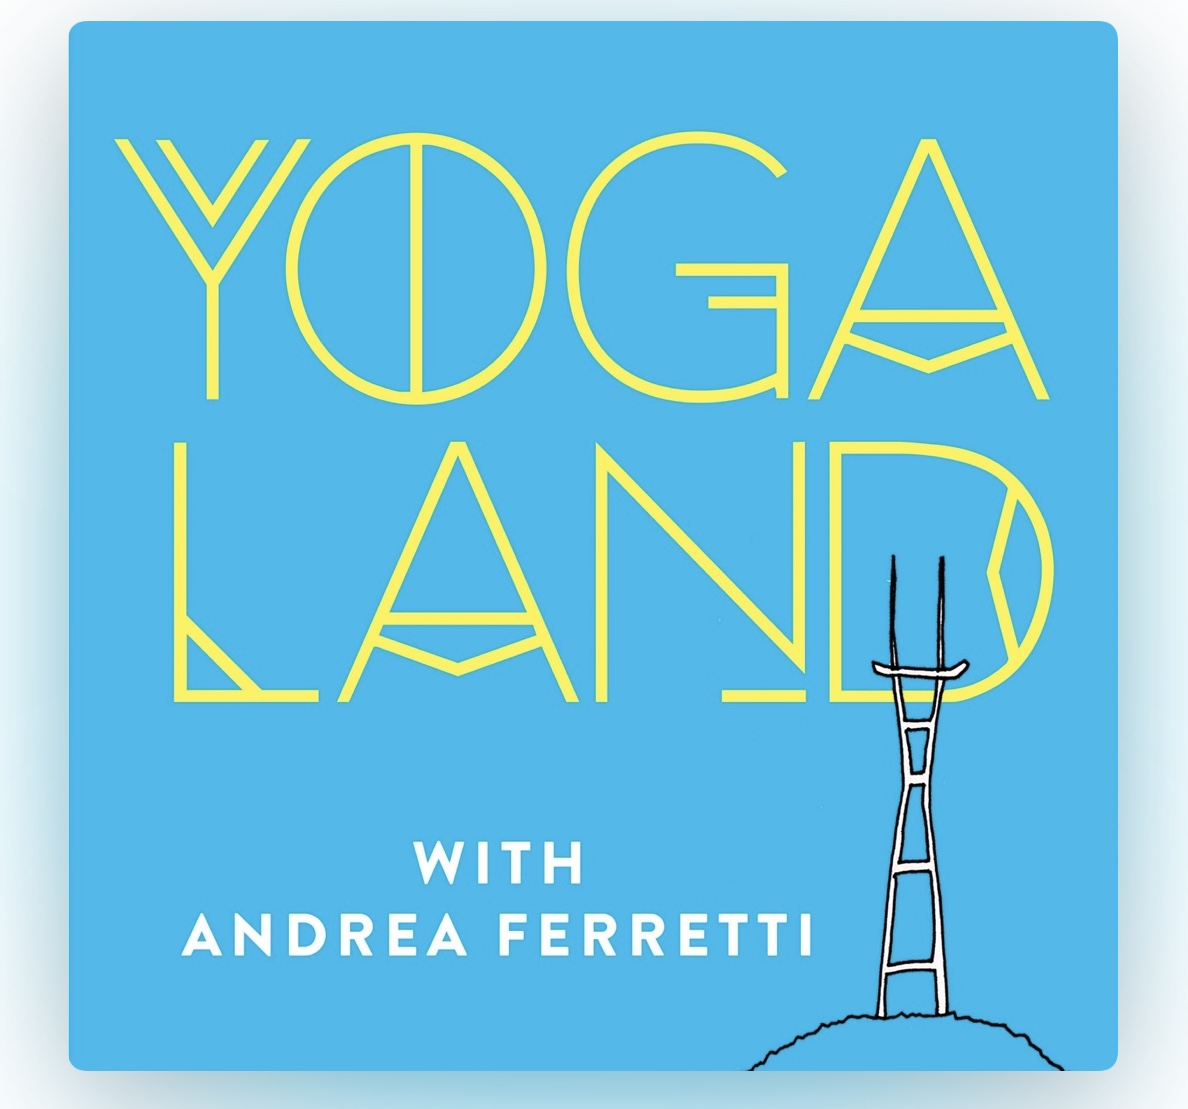 https://itunes.apple.com/ca/podcast/yogaland-podcast/id1105565152?mt=2